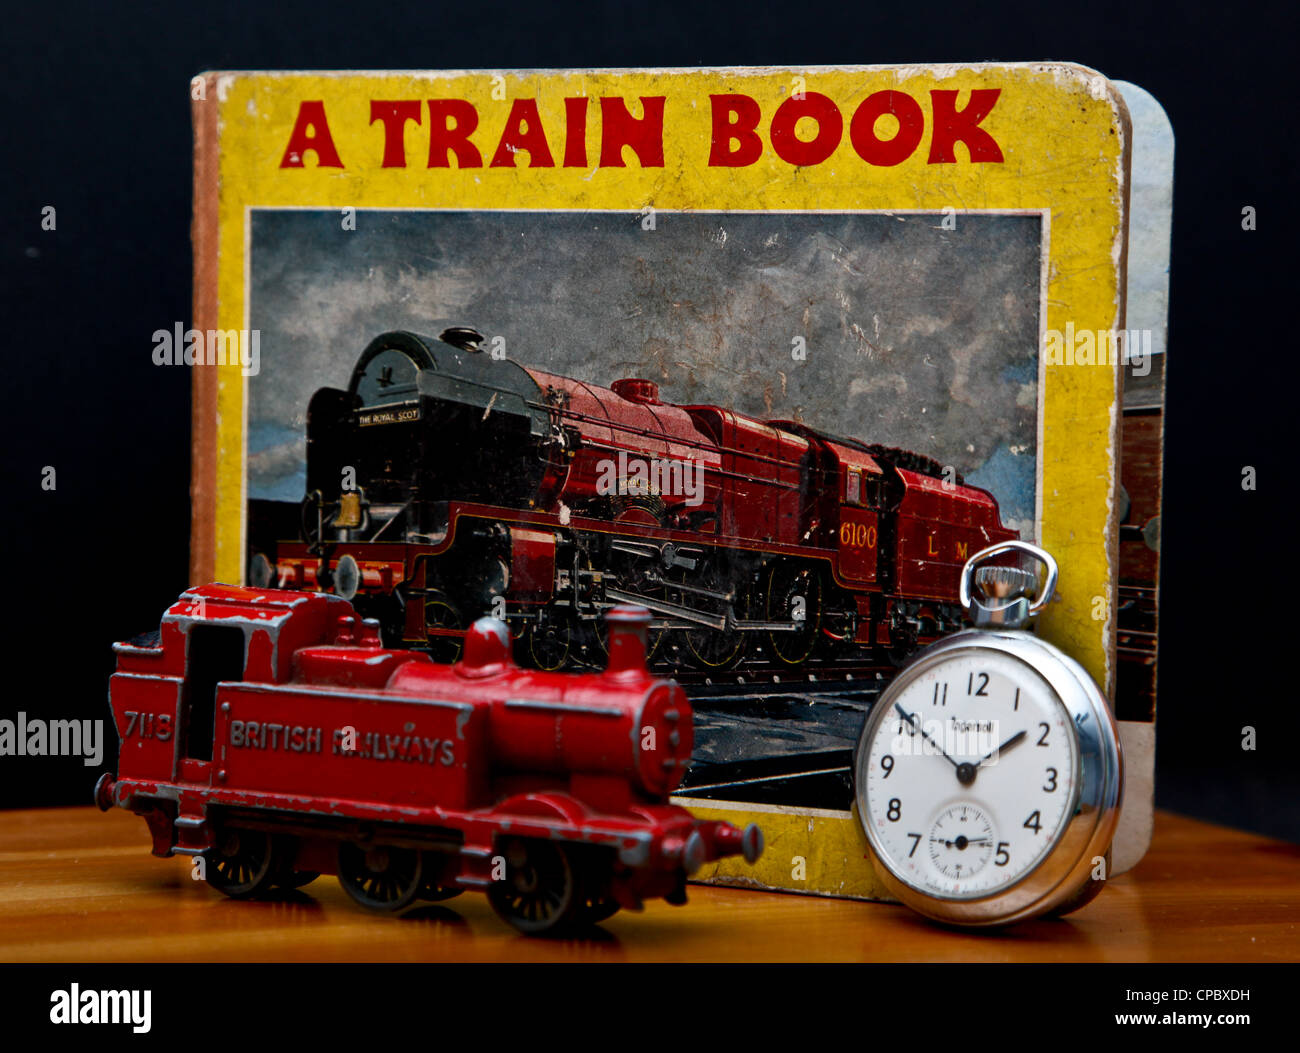 An old child's book about trains with a toy train and pocket watch in front of it. Concept of trains running on Stock Photo